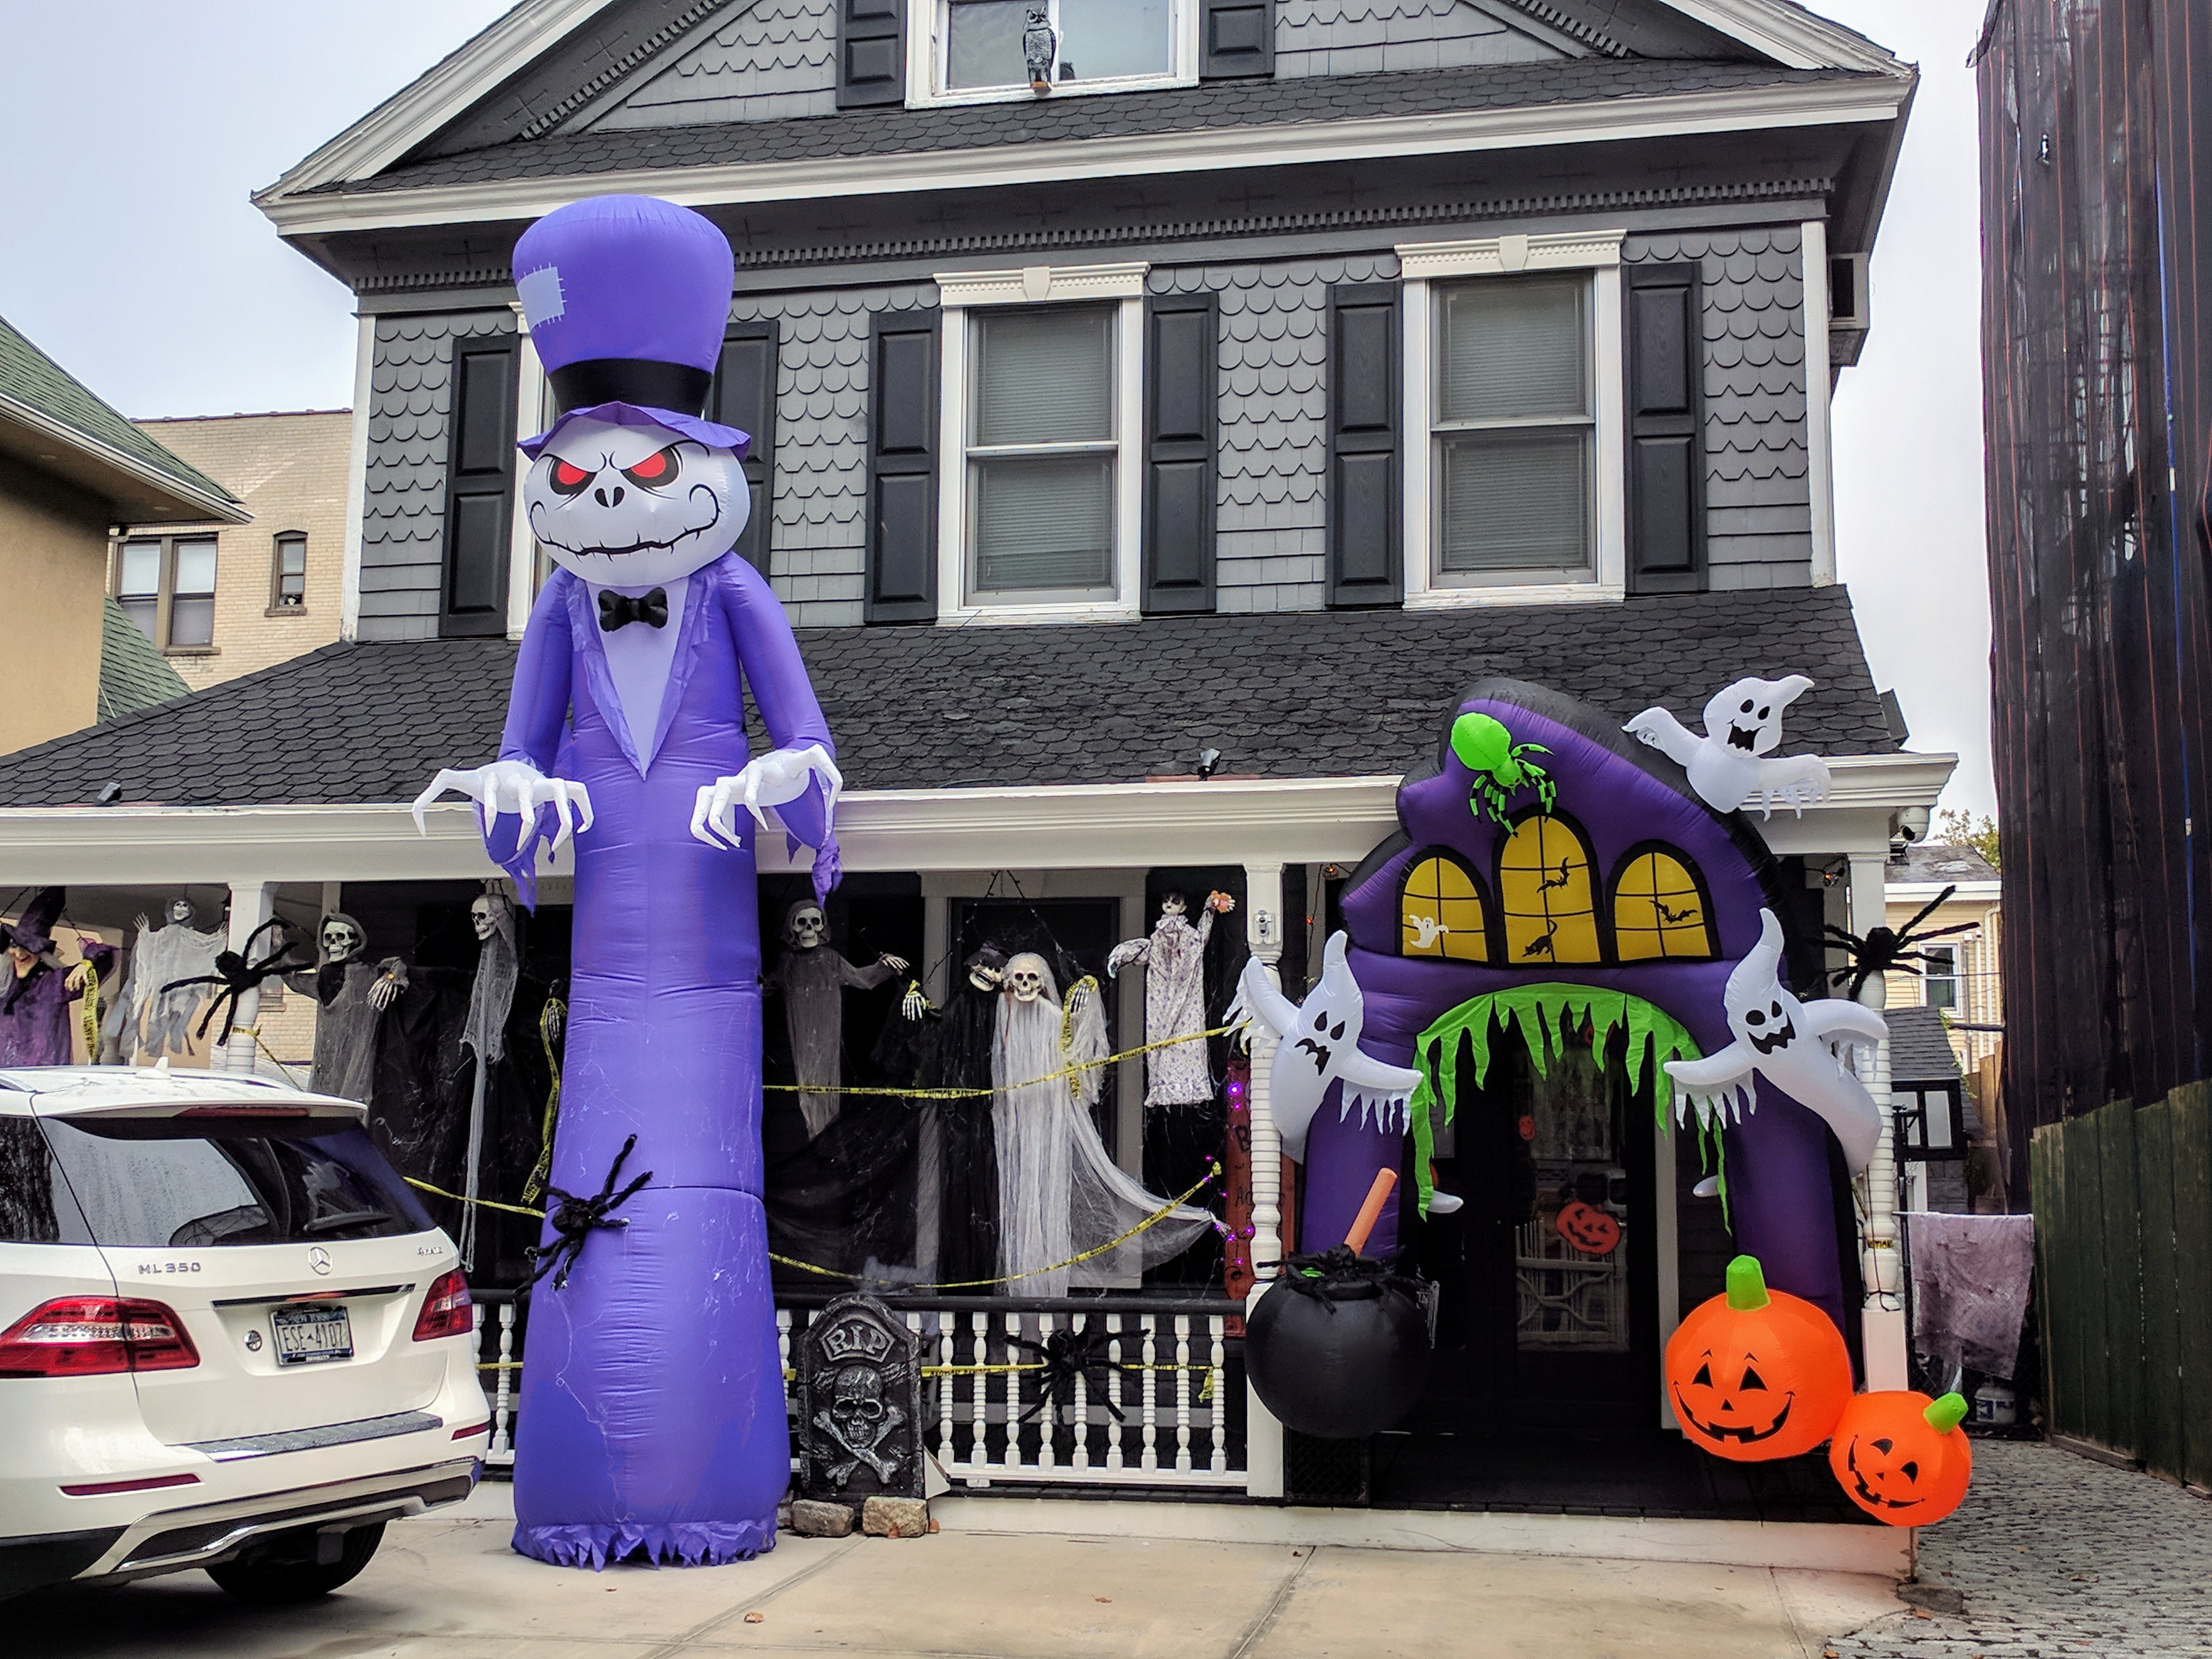 photos: the spookiest halloween decorations in nyc - carroll gardens